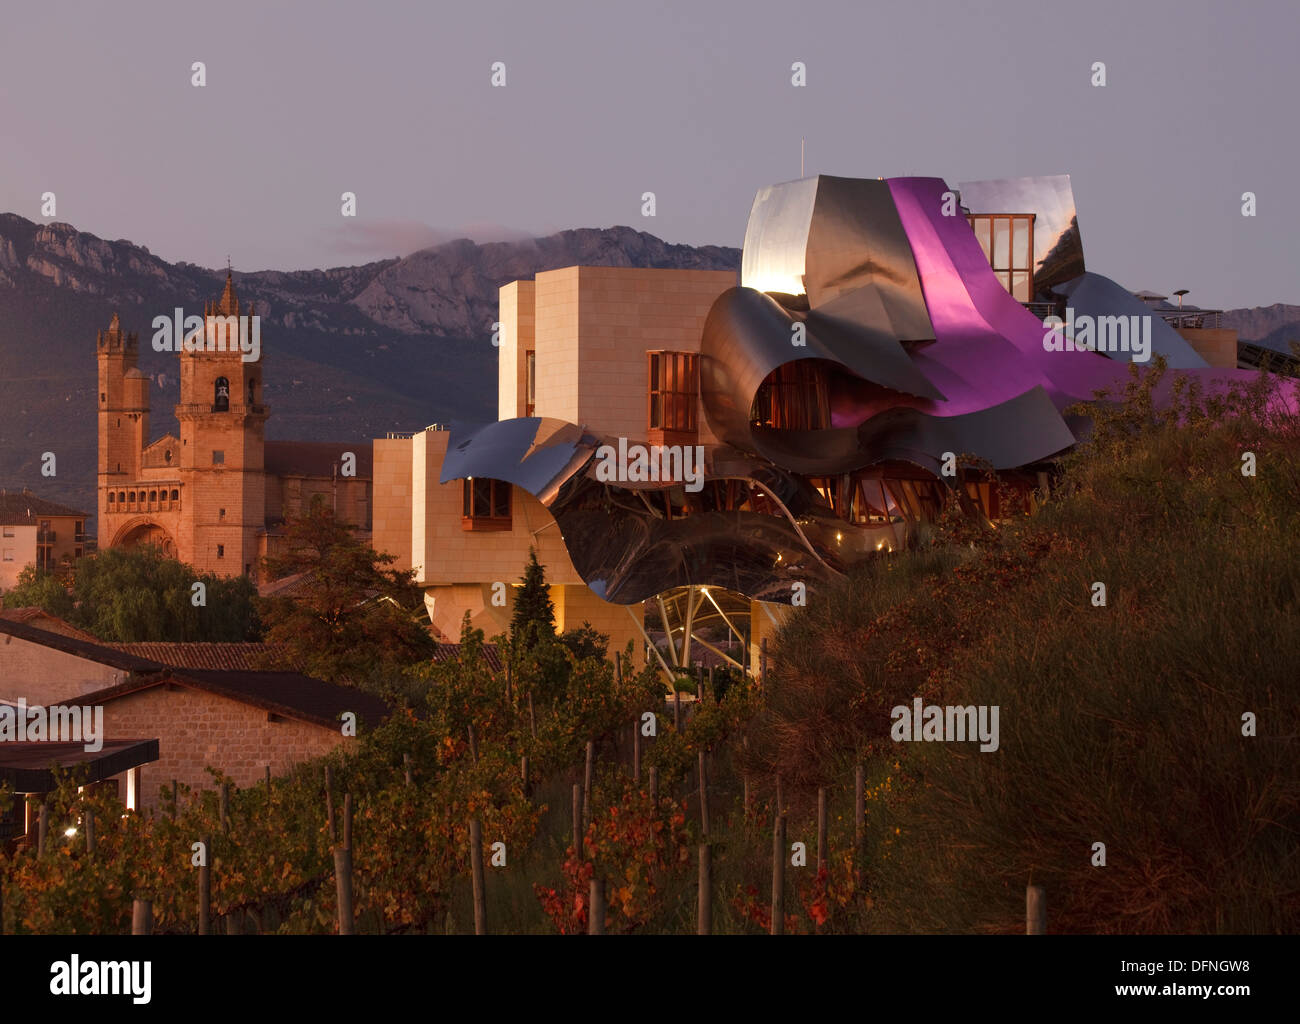 Hotel marques de riscal architect frank gehry bodega - Arquitecto bodegas marques de riscal ...